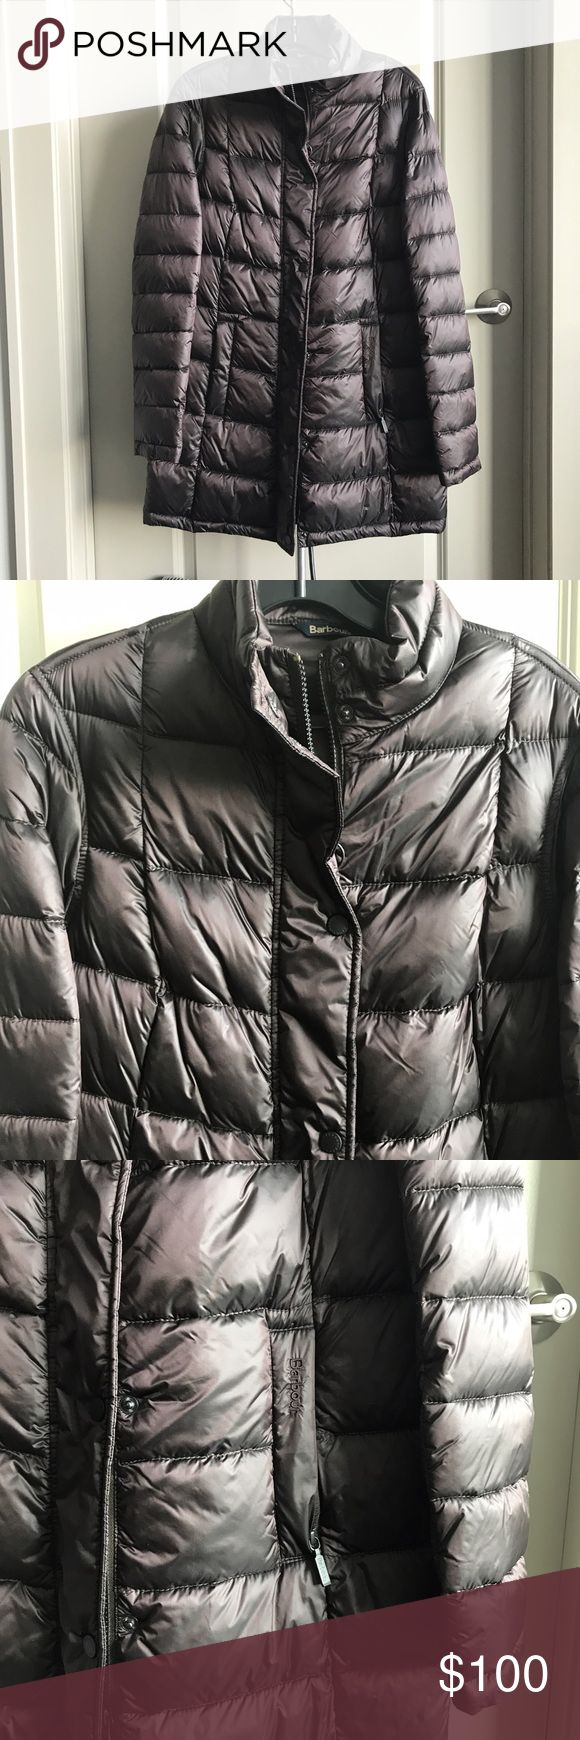 Barbour puffer coat Barbour puffer coat. Dark plum purplish color (very pretty). Has front zipper and snap closure. Side zip pockets and stand collar hood. New without tags. Perfect condition. Size 6. Barbour Jackets & Coats Puffers